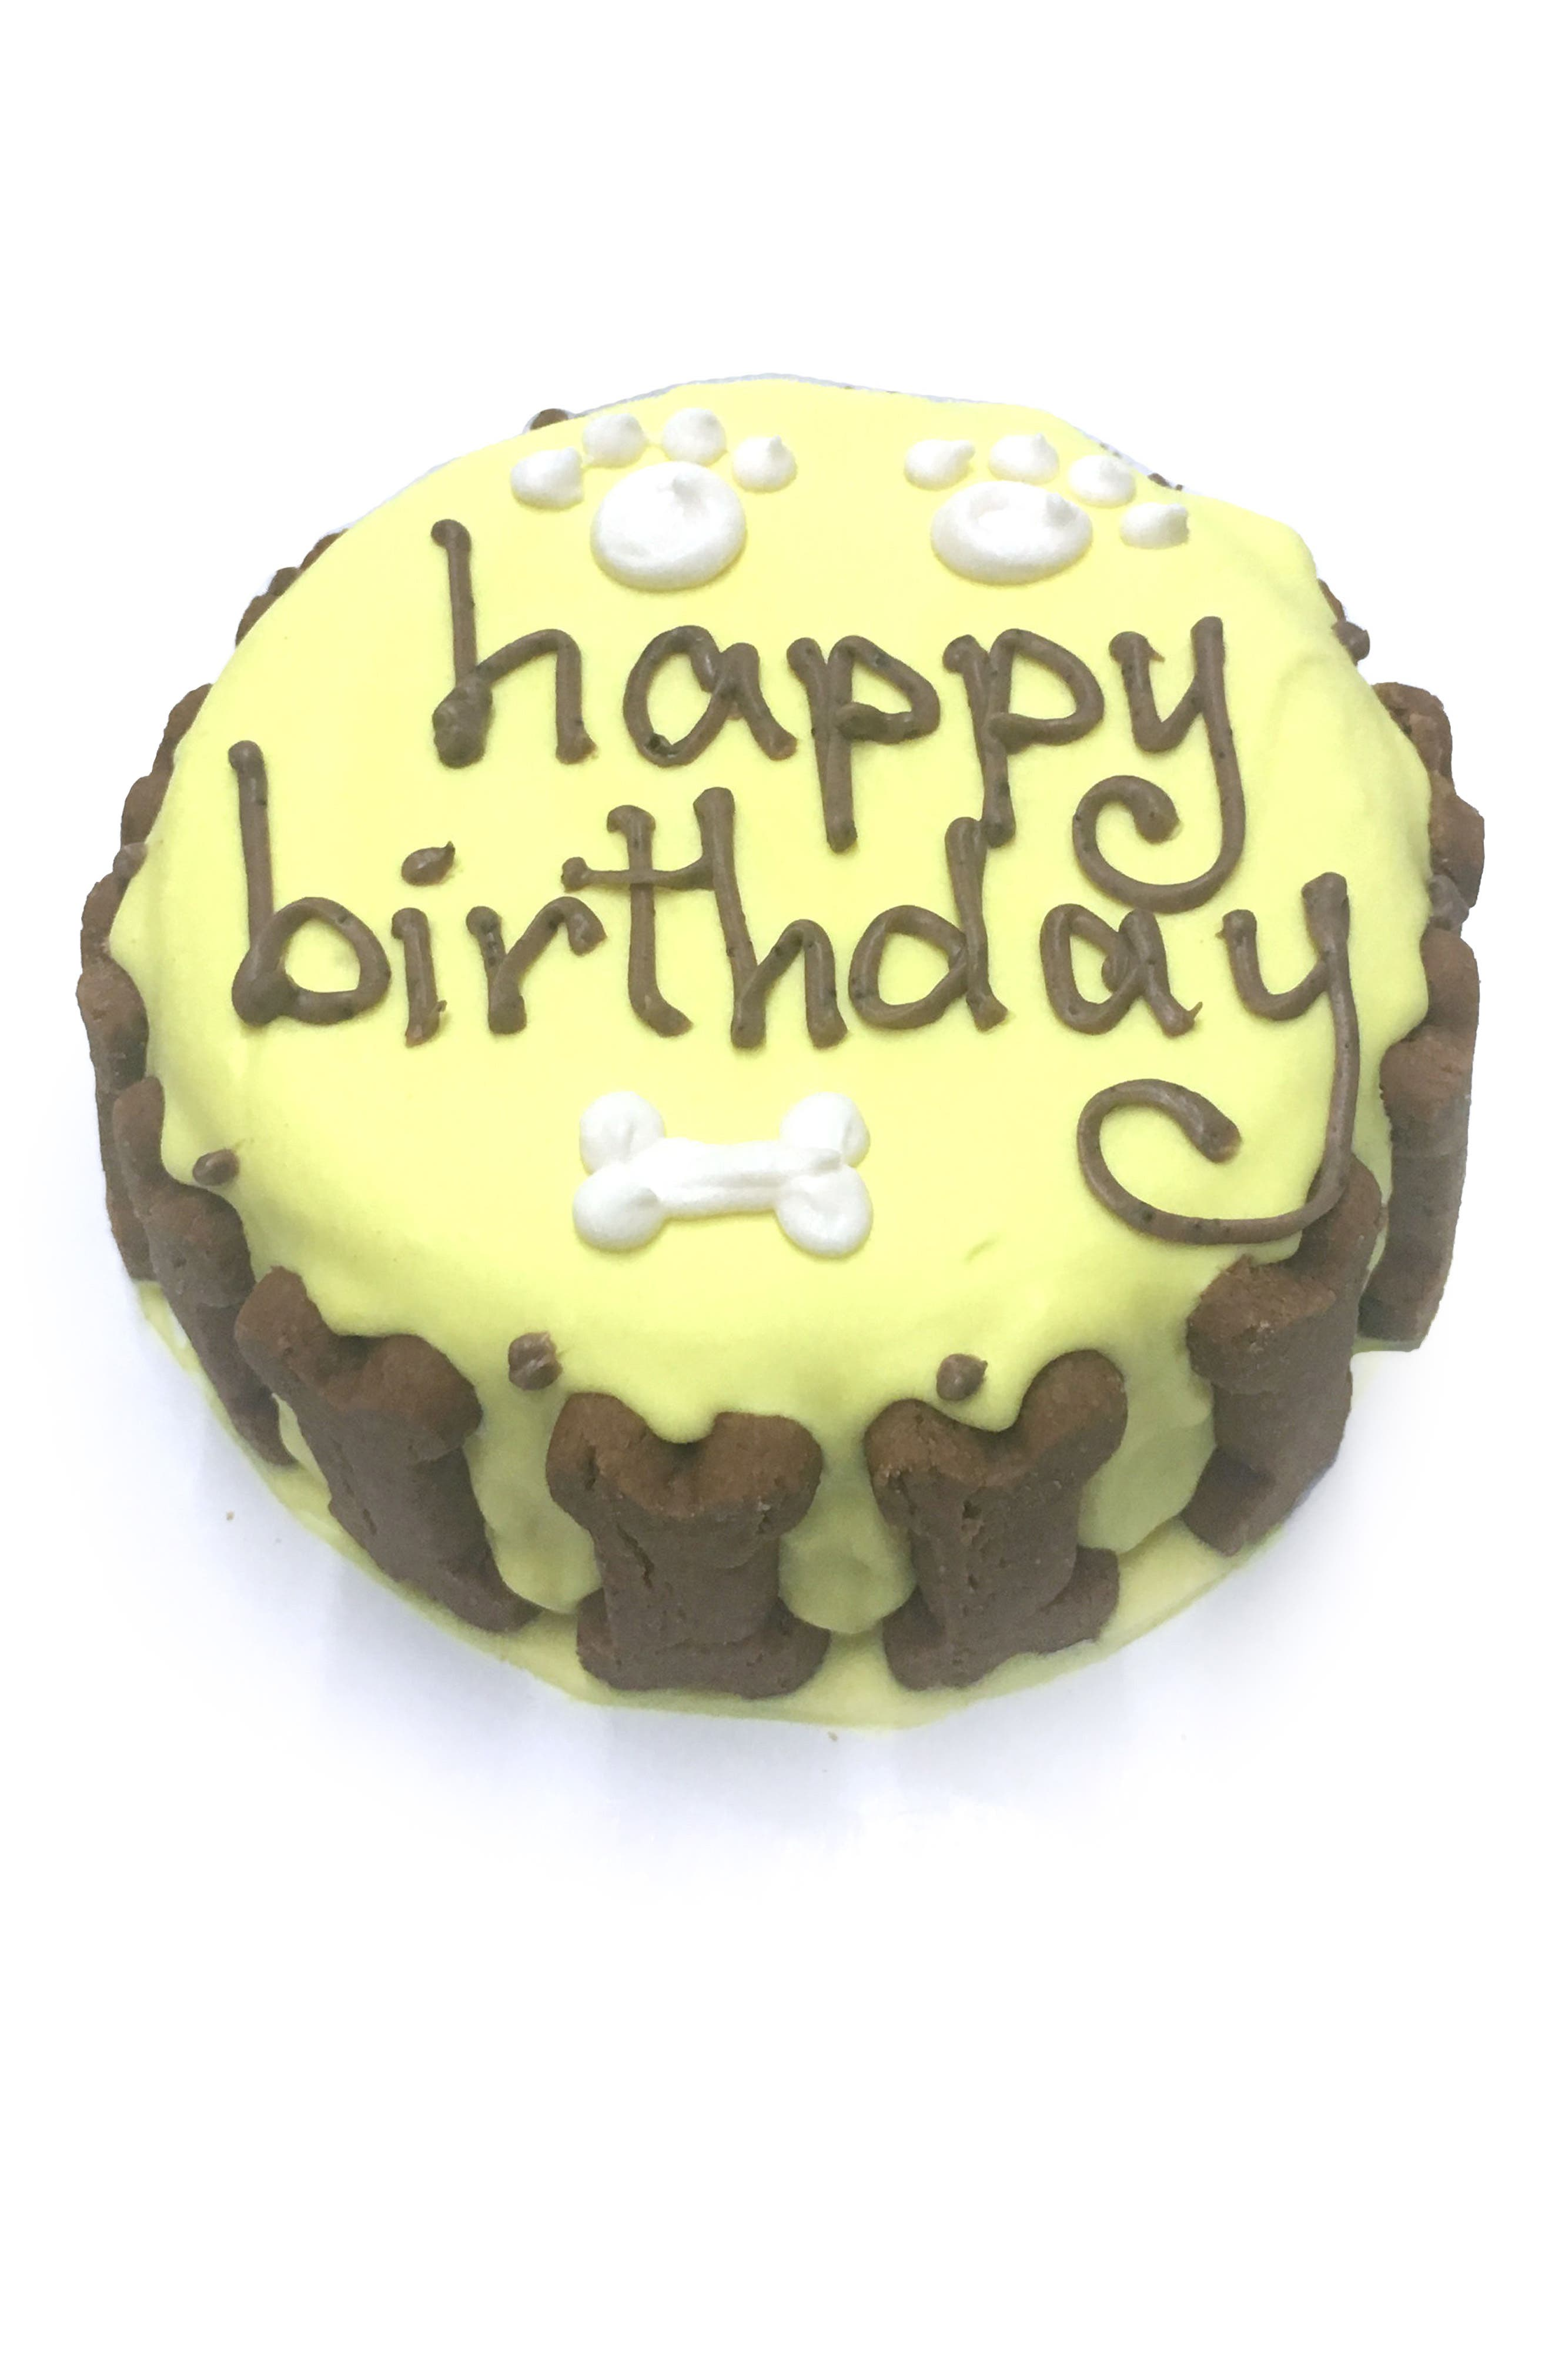 Bubba Rose Biscuit Company Yellow Classic Birthday Cake Dog Treat,                         Main,                         color, YELLOW